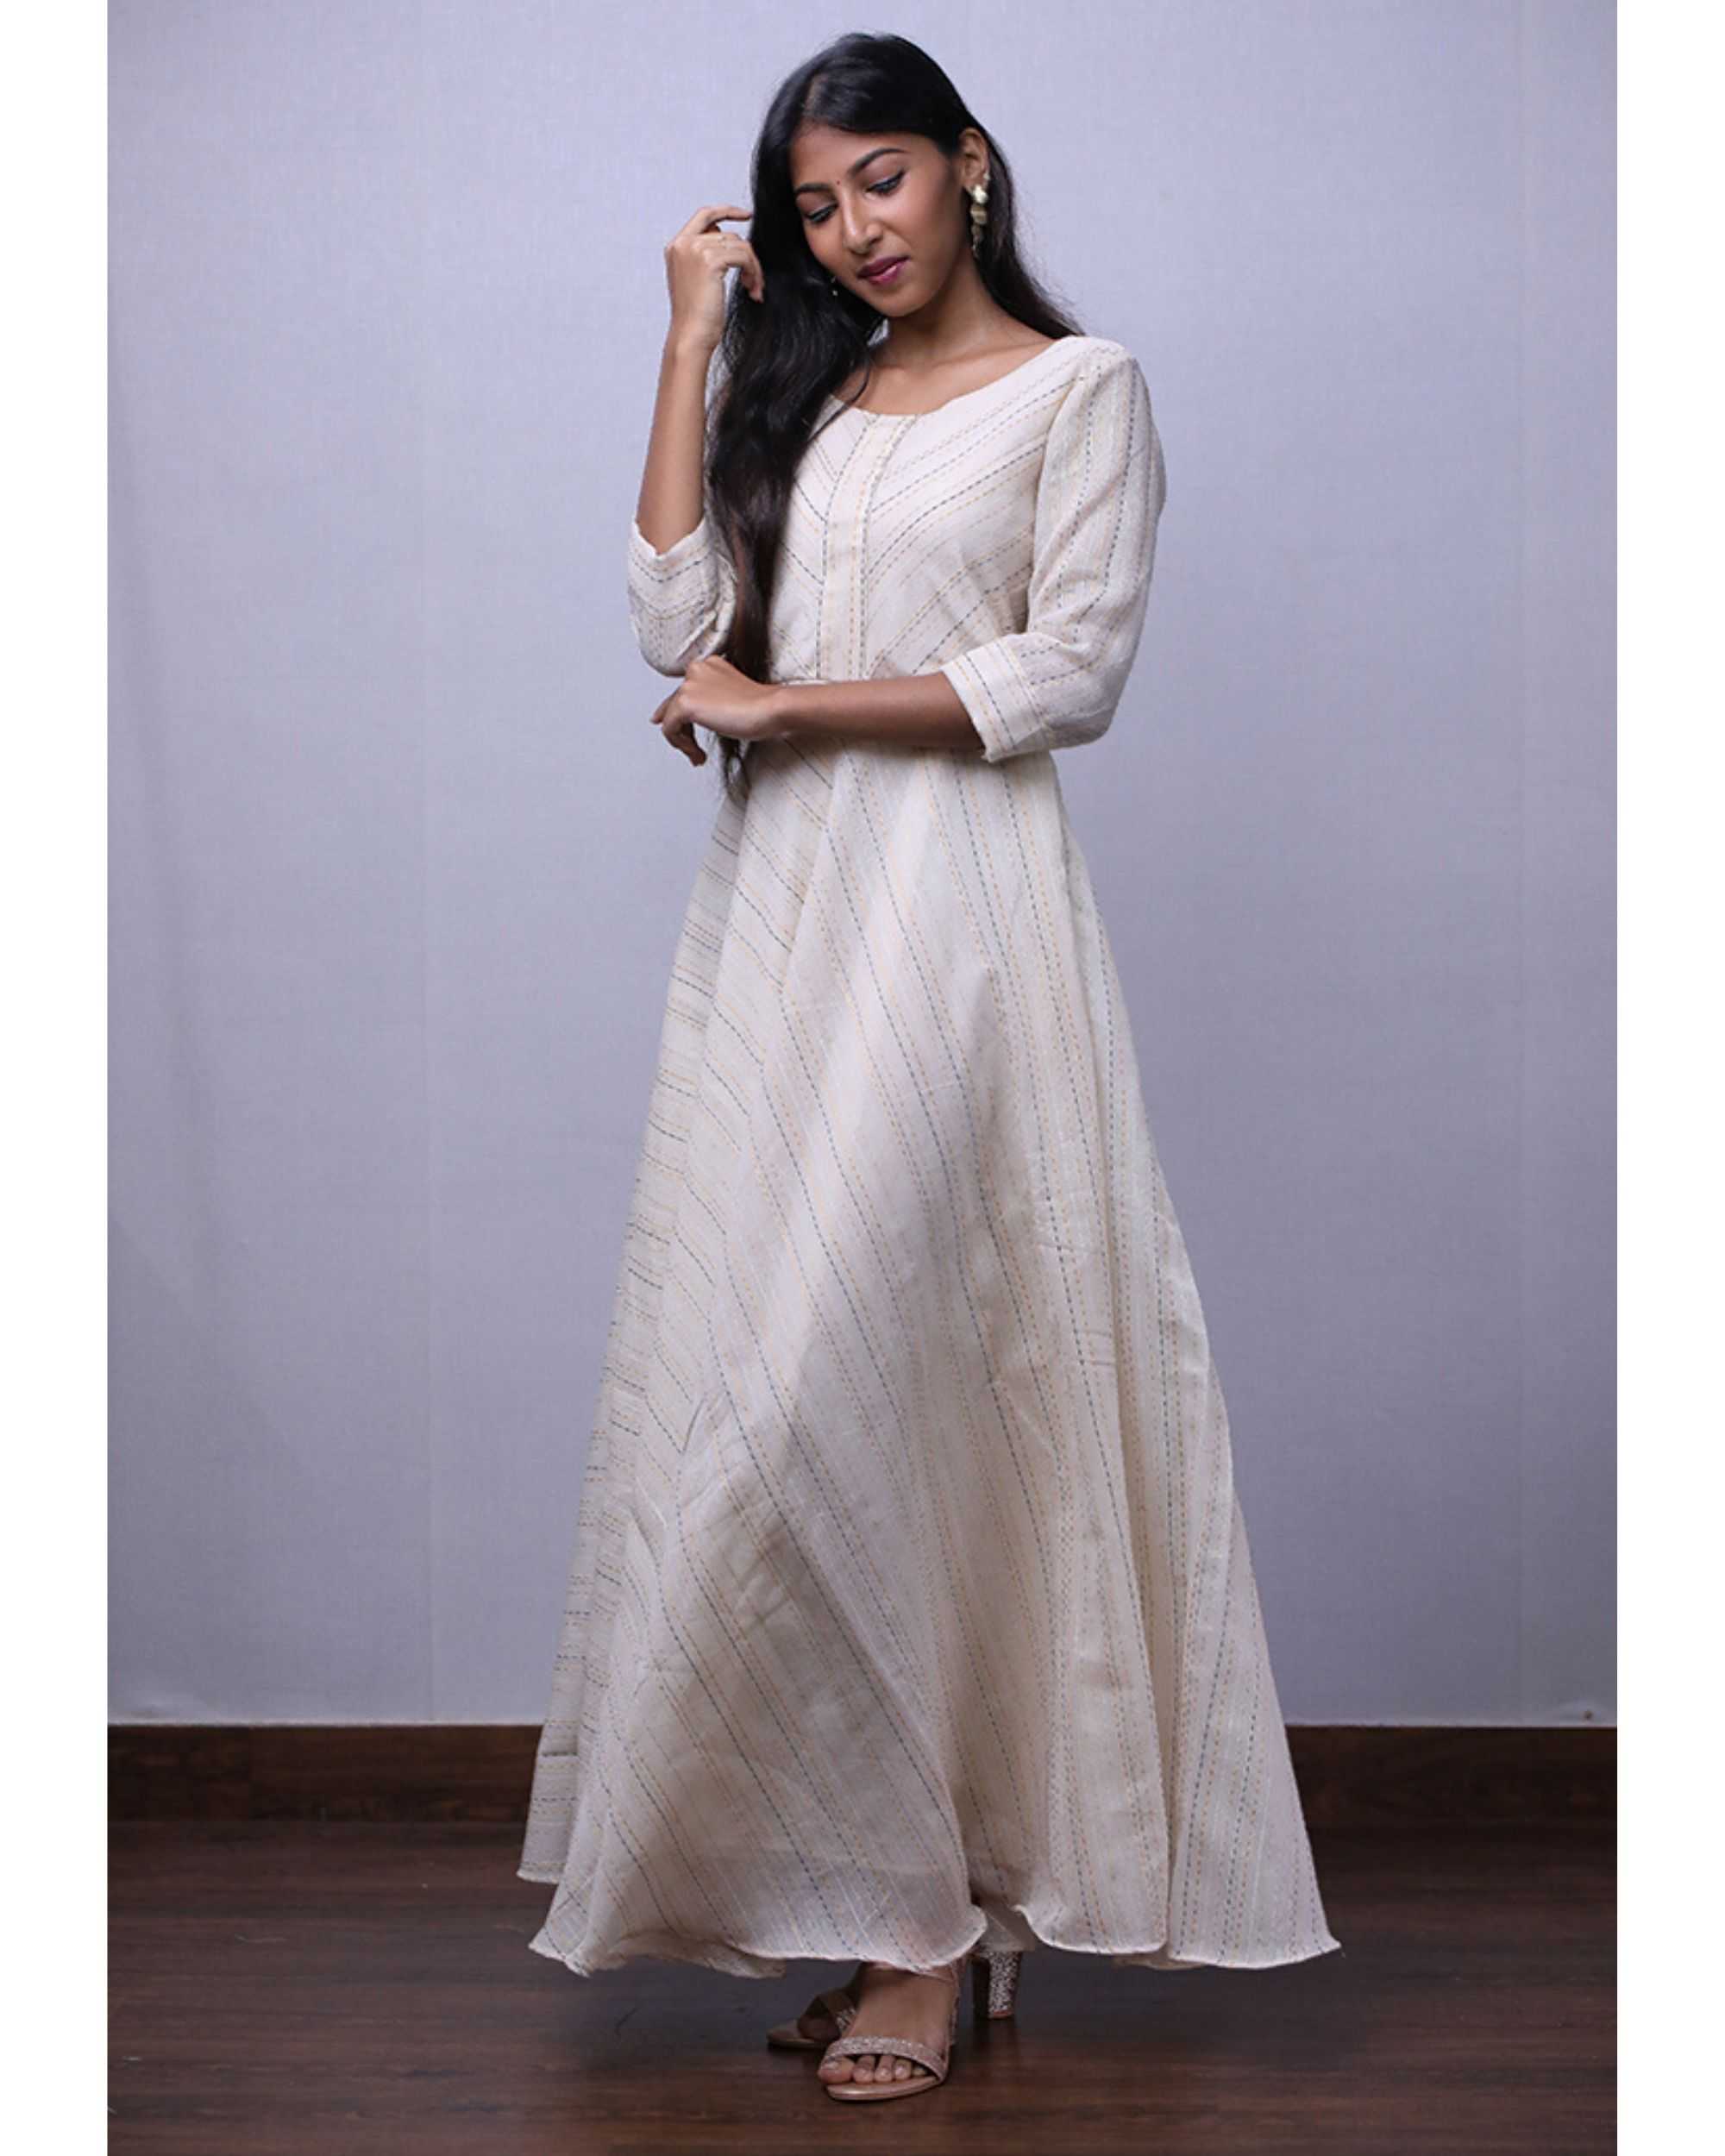 White chanderi kantha maxi dress